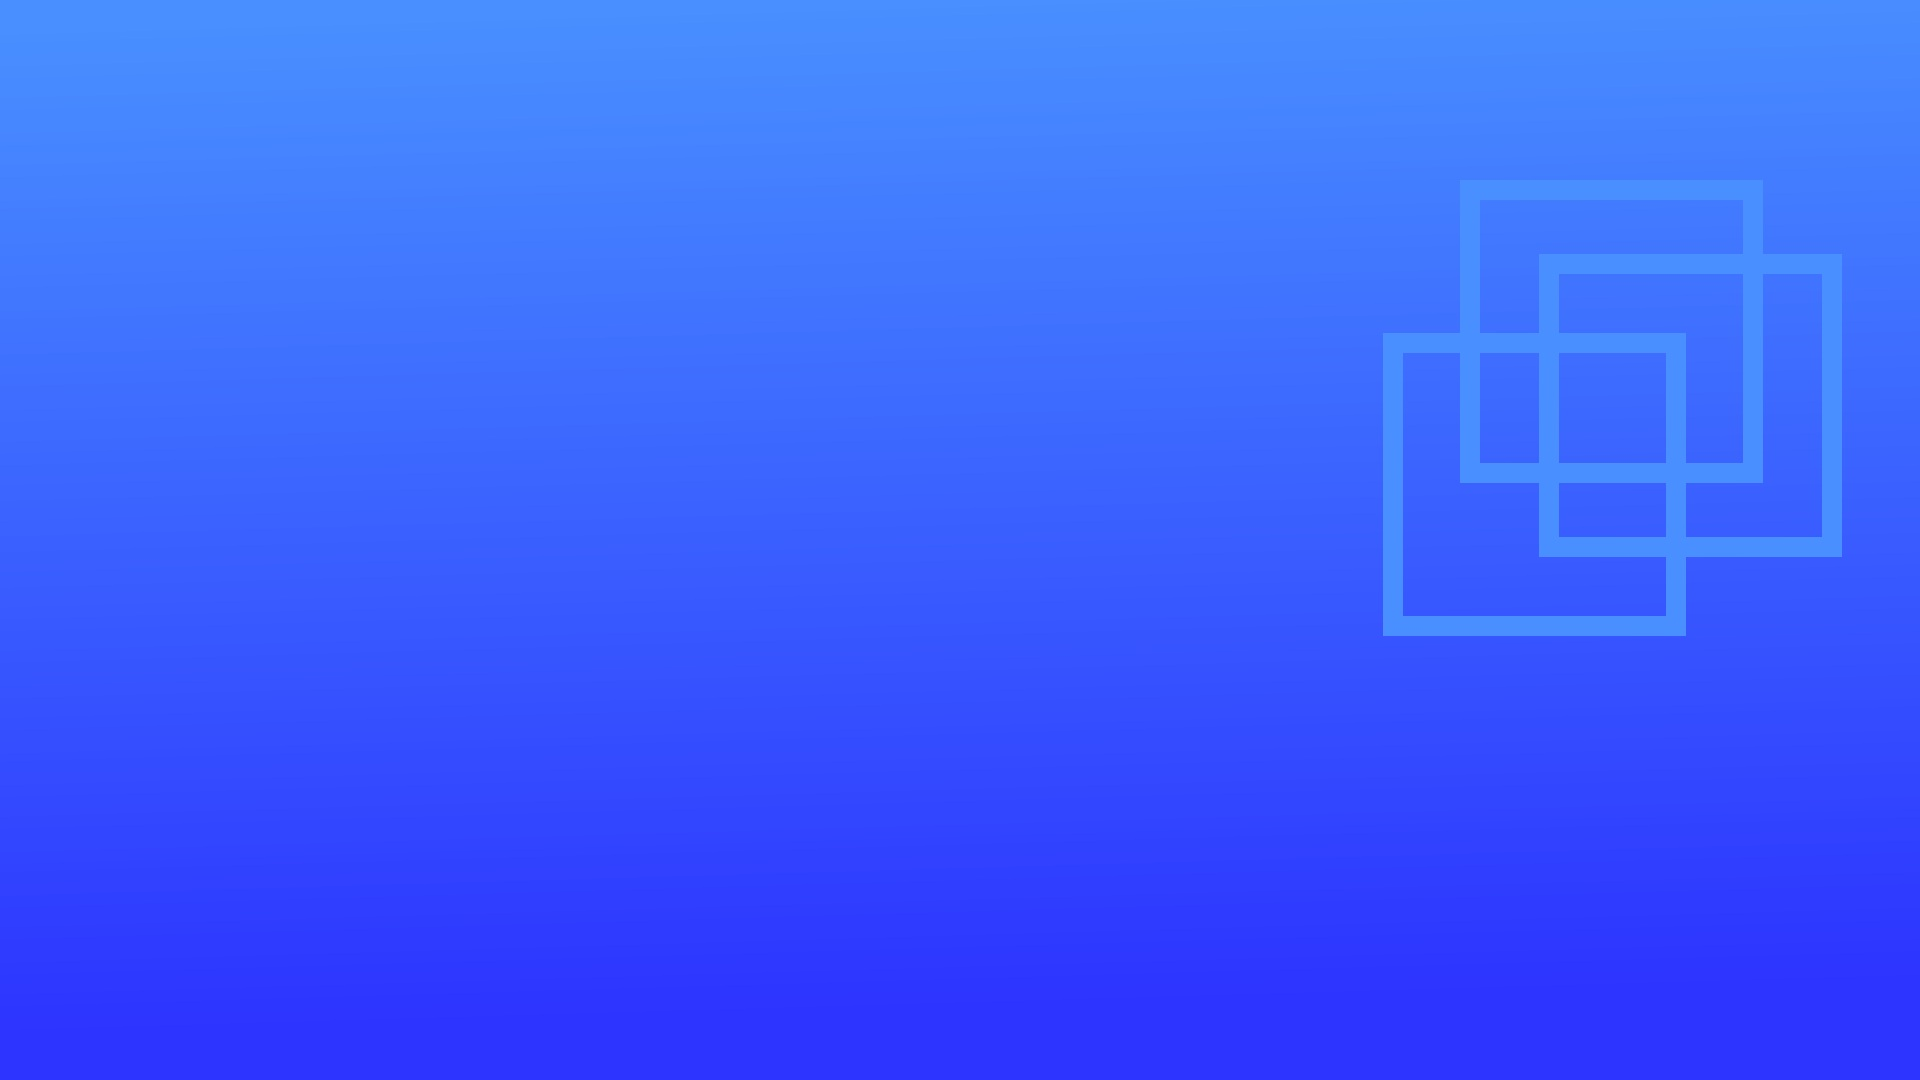 bluevmboxes_wallpaper